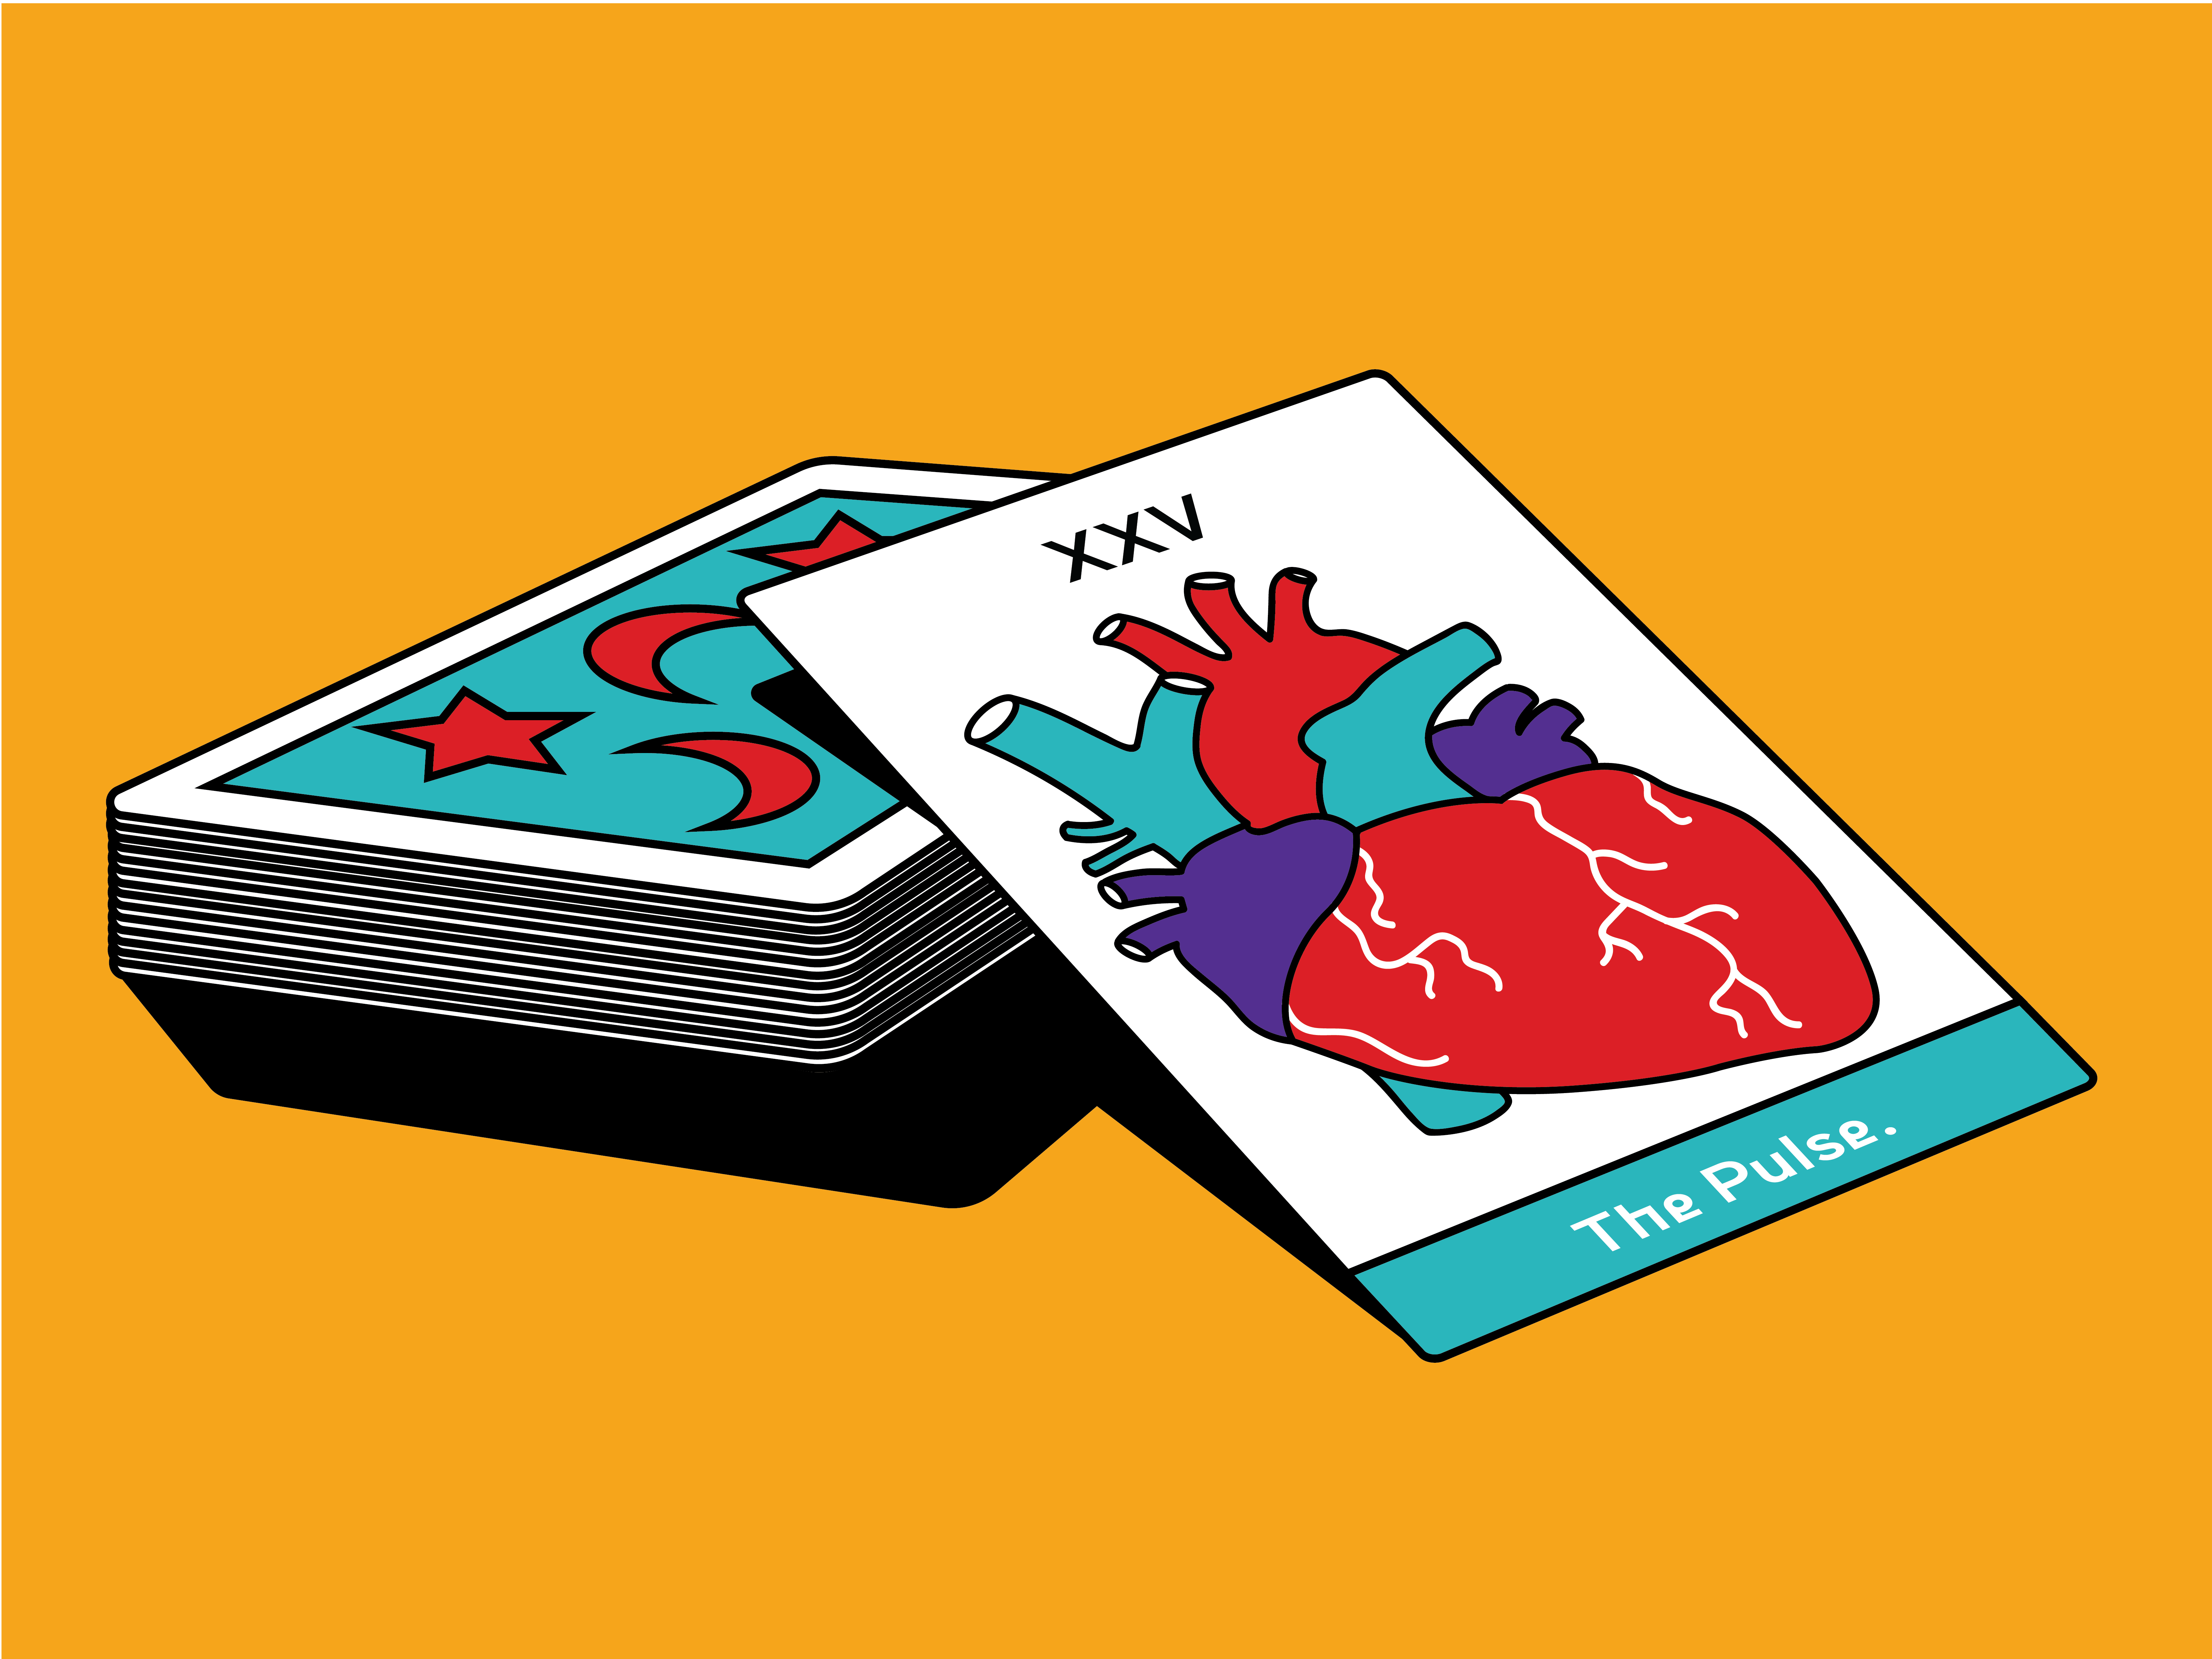 Heartbeat fortune-telling card visual